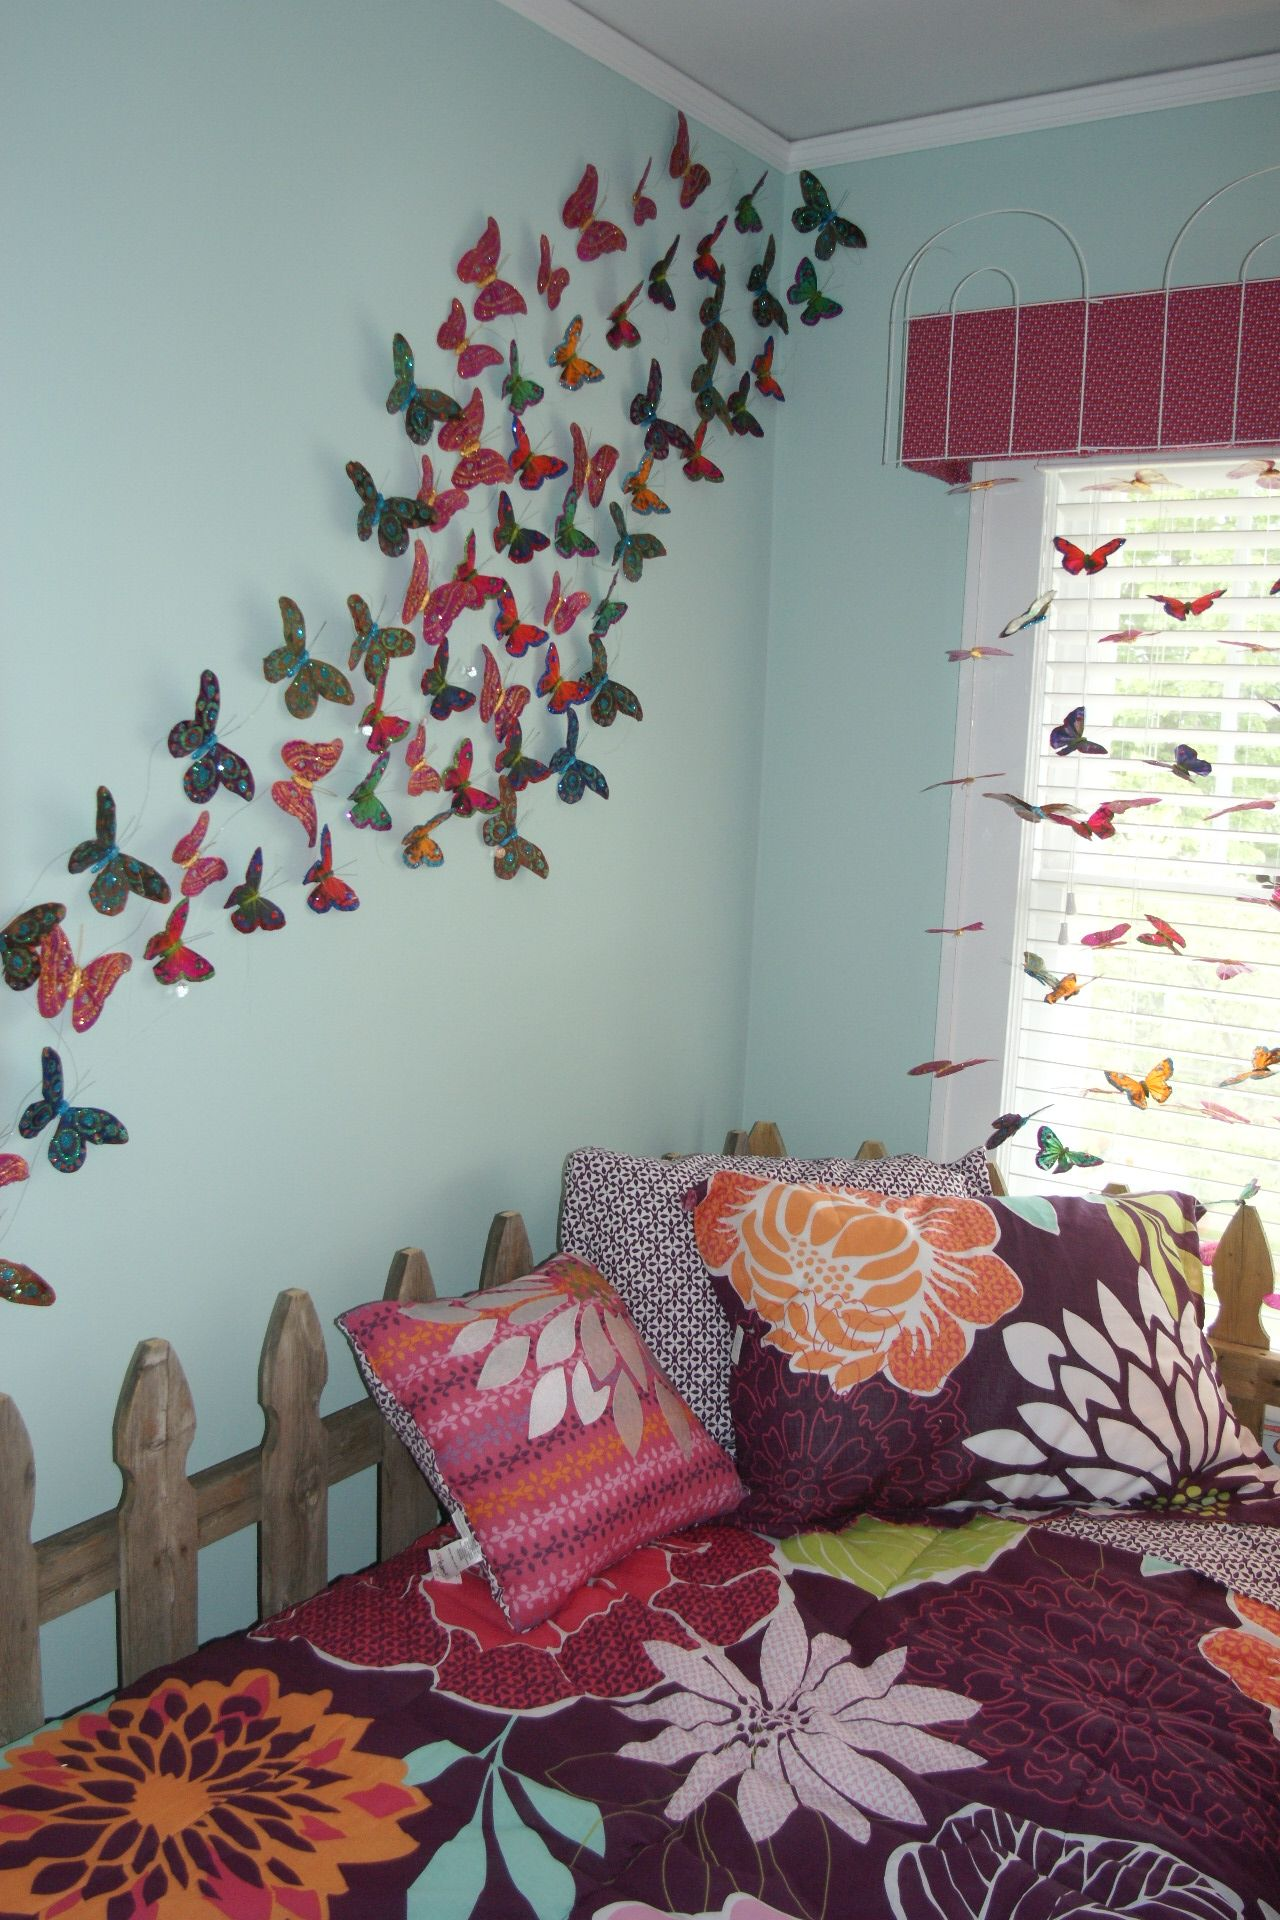 Butterfly bedroom whimsy pinterest for Butterfly bedroom ideas